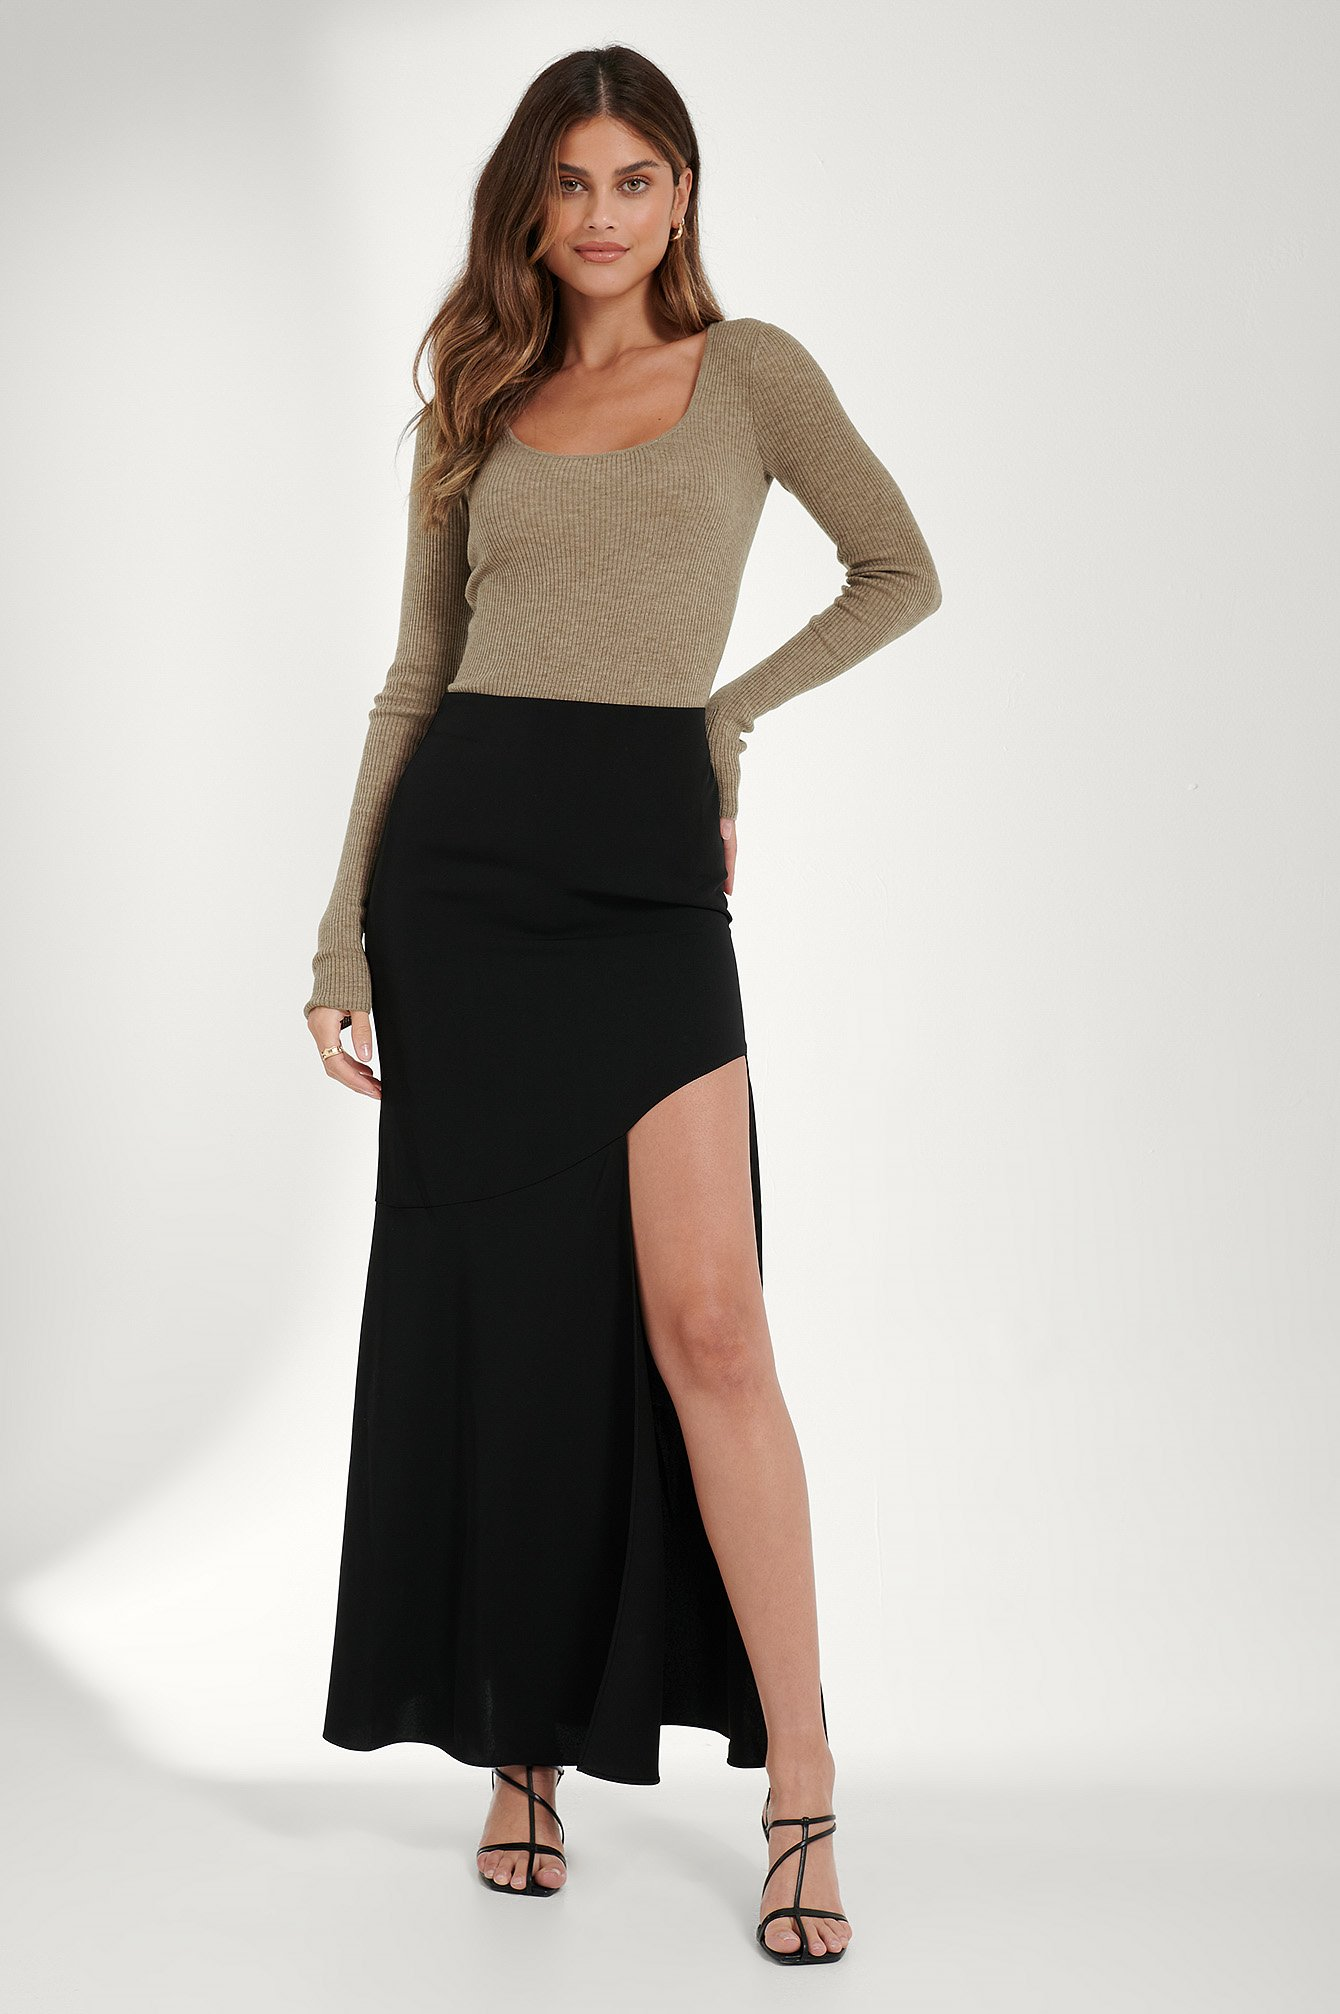 Black Asymmetric Flowy Skirt